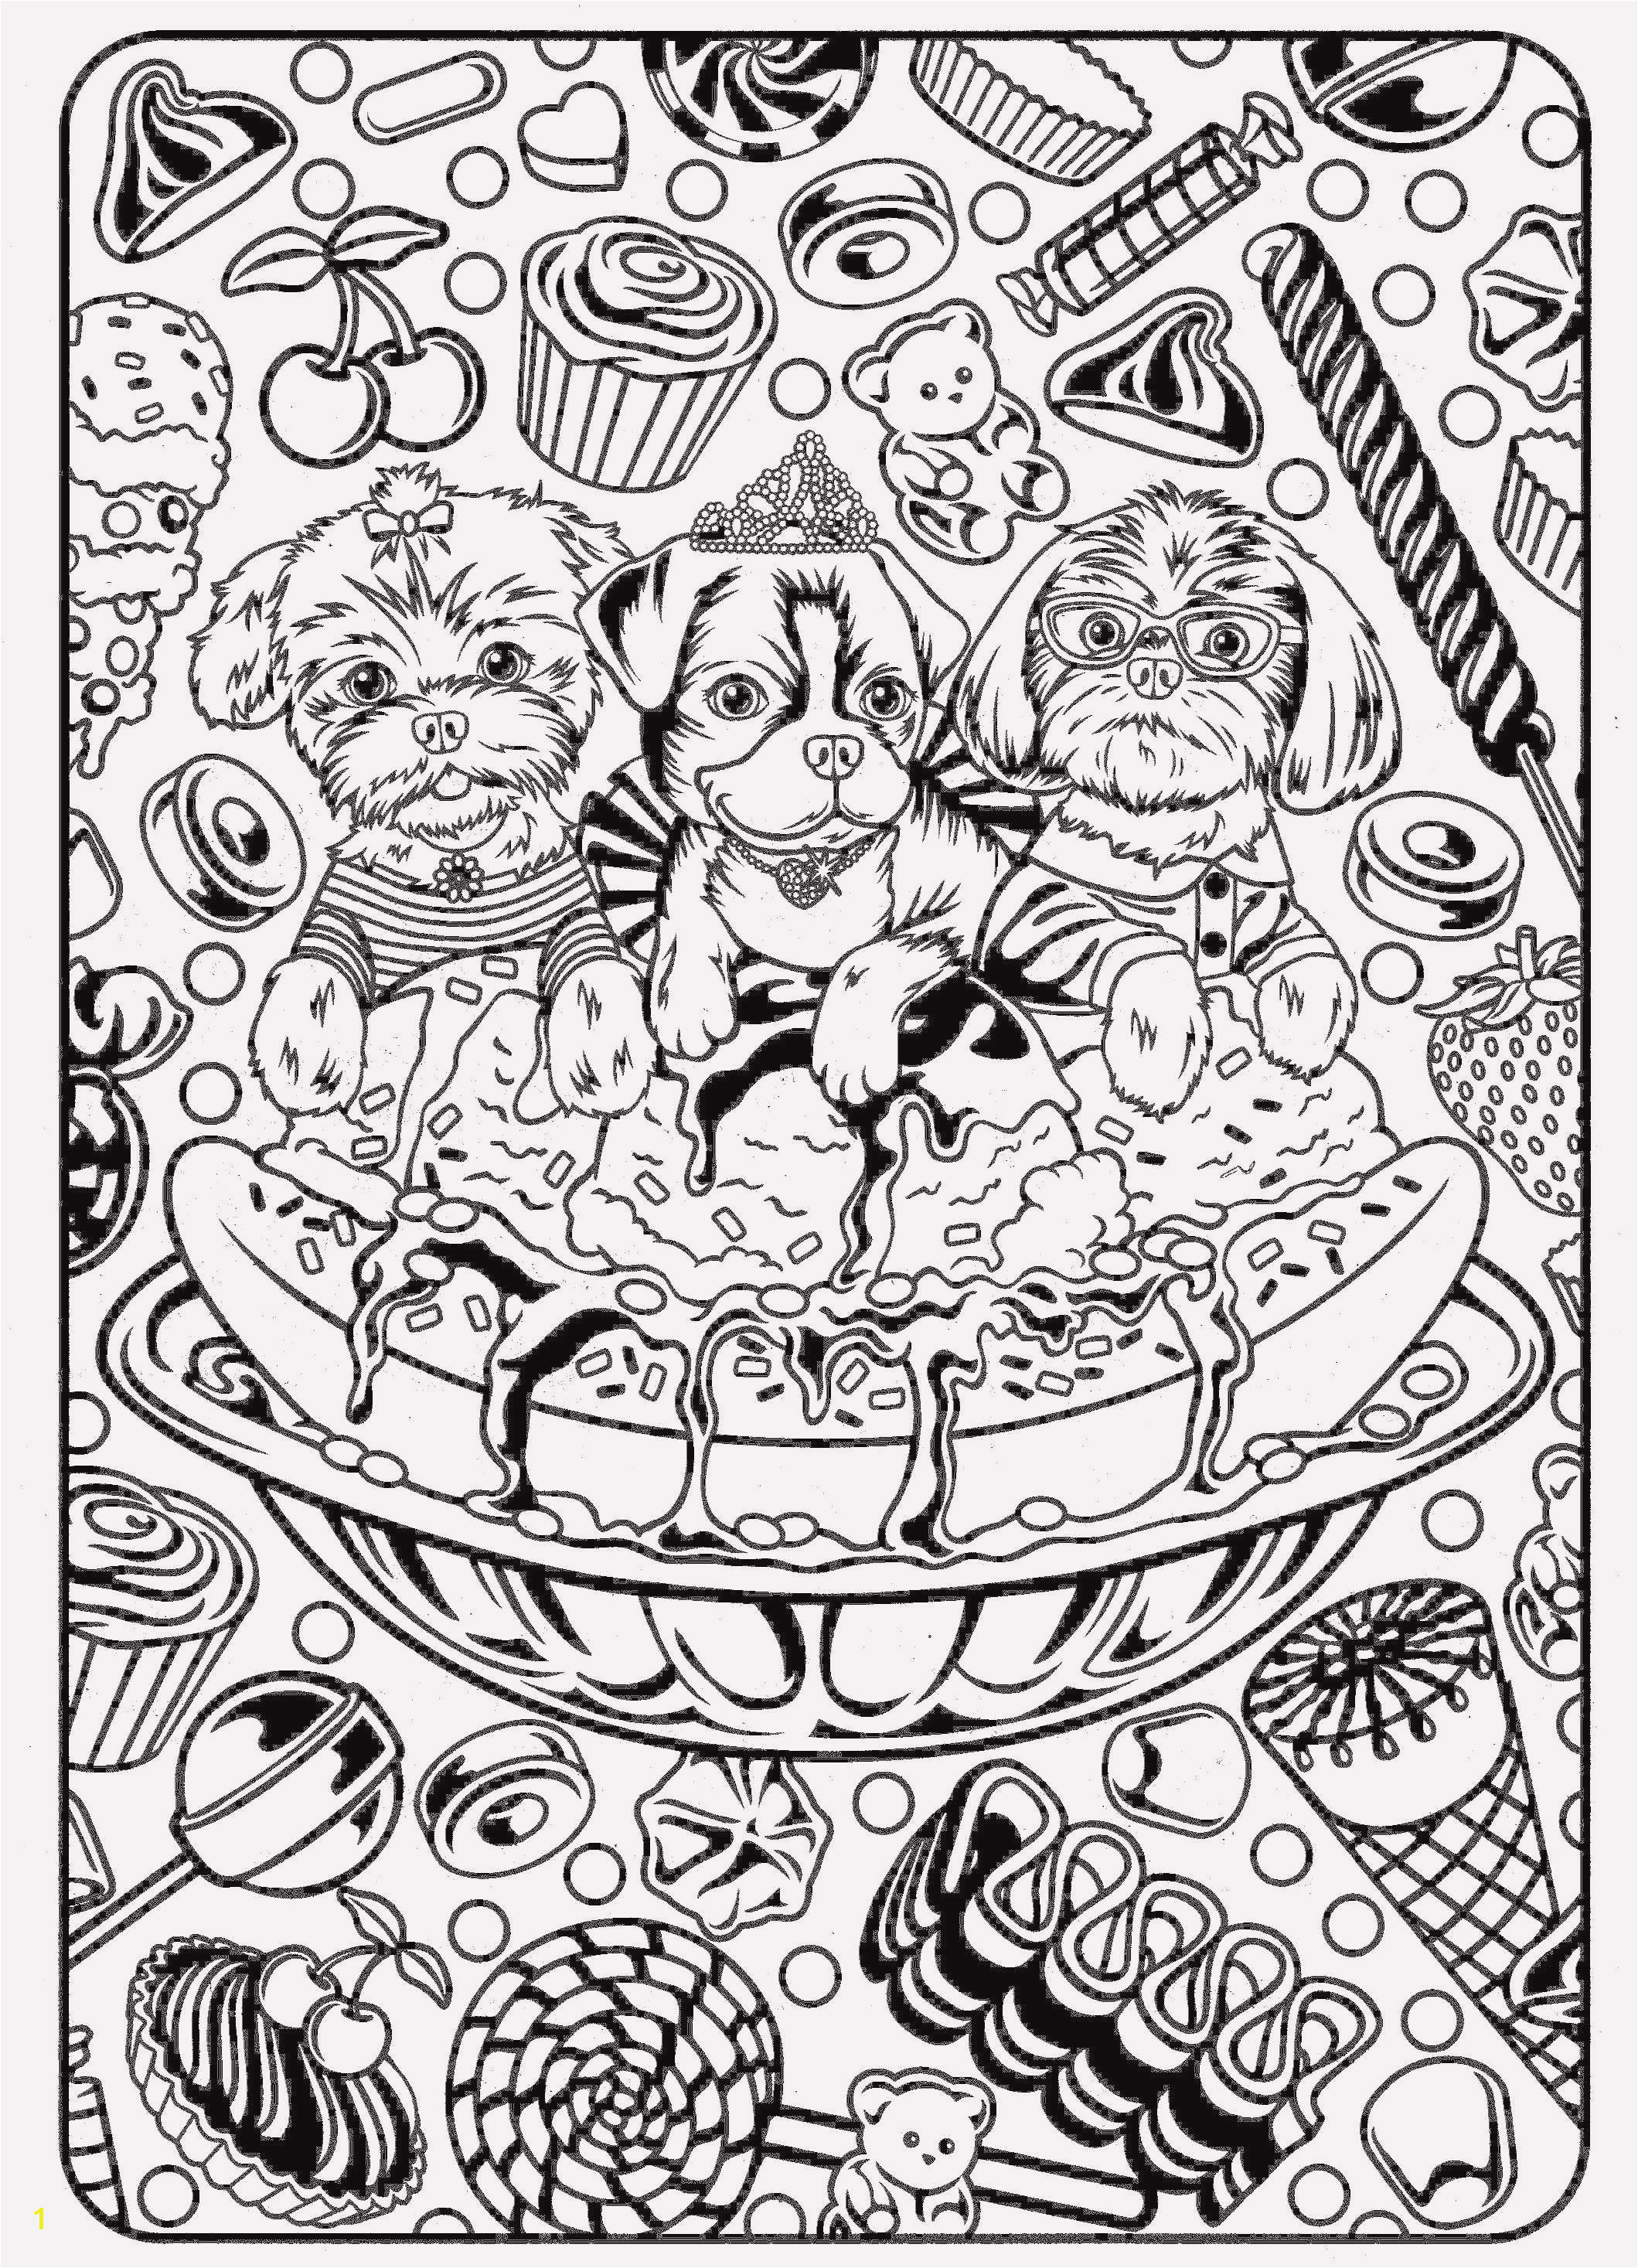 Coloring Pages Ducks Awesome Coloring Pages for Girls Lovely Printable Cds 0d – Fun Time Girls Coloring Pages Monster High